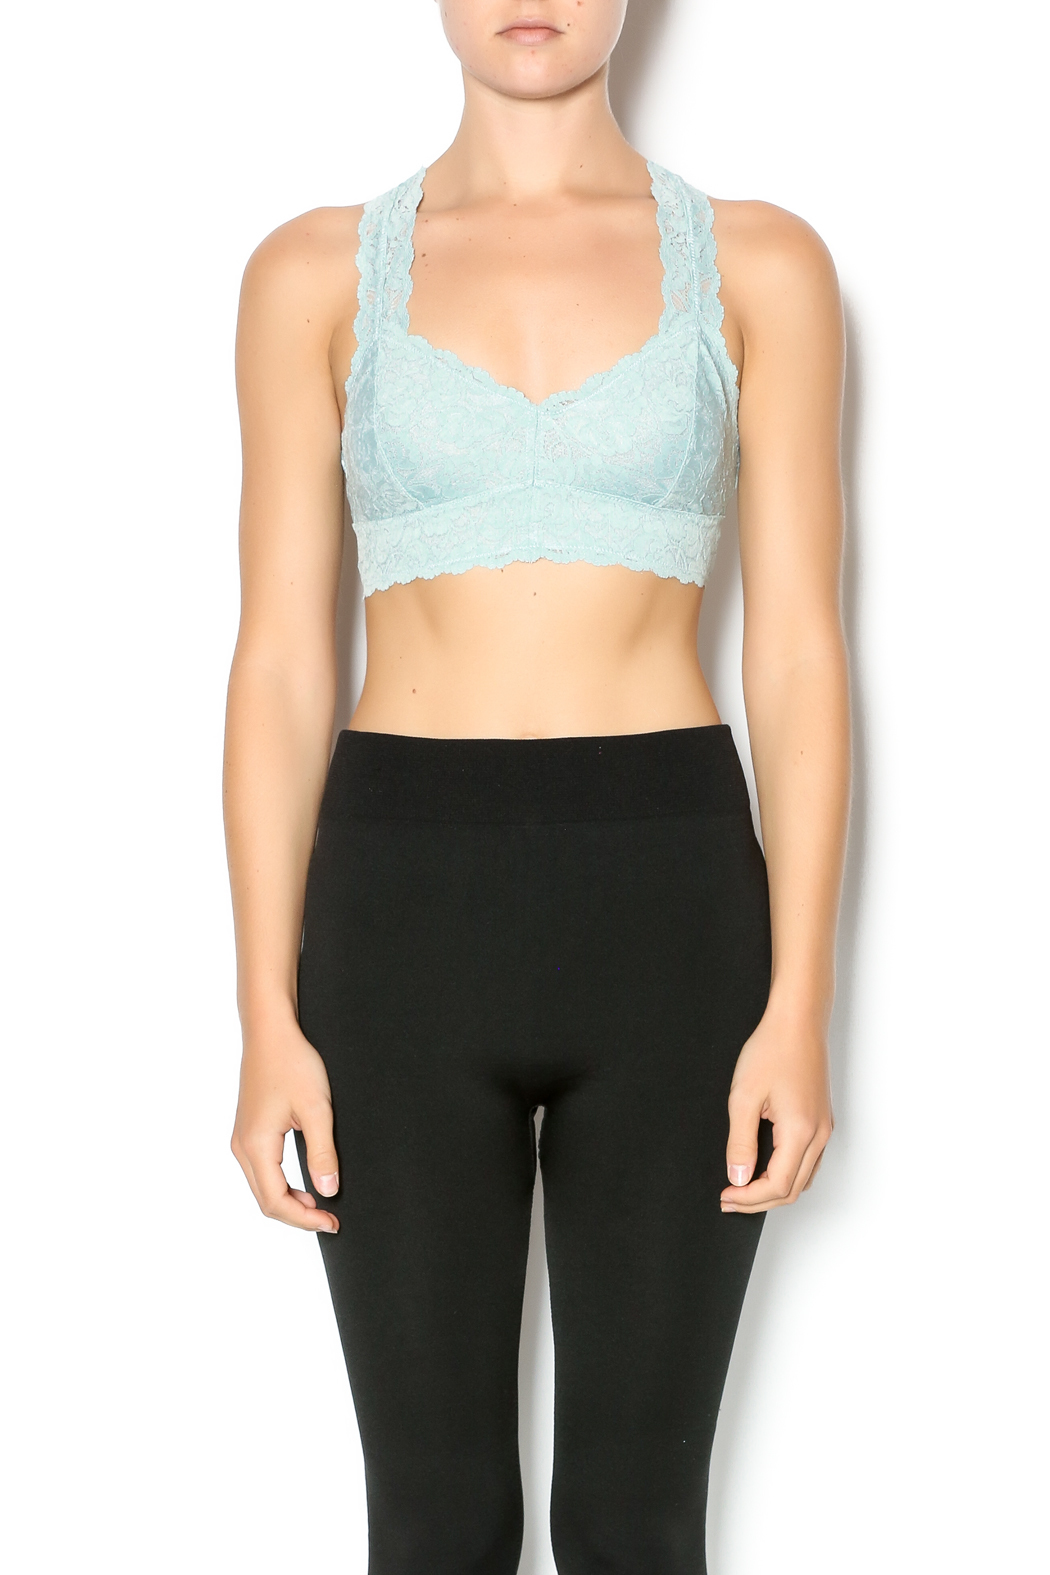 Wishlist Lacy Racer Back Bralette - Front Cropped Image